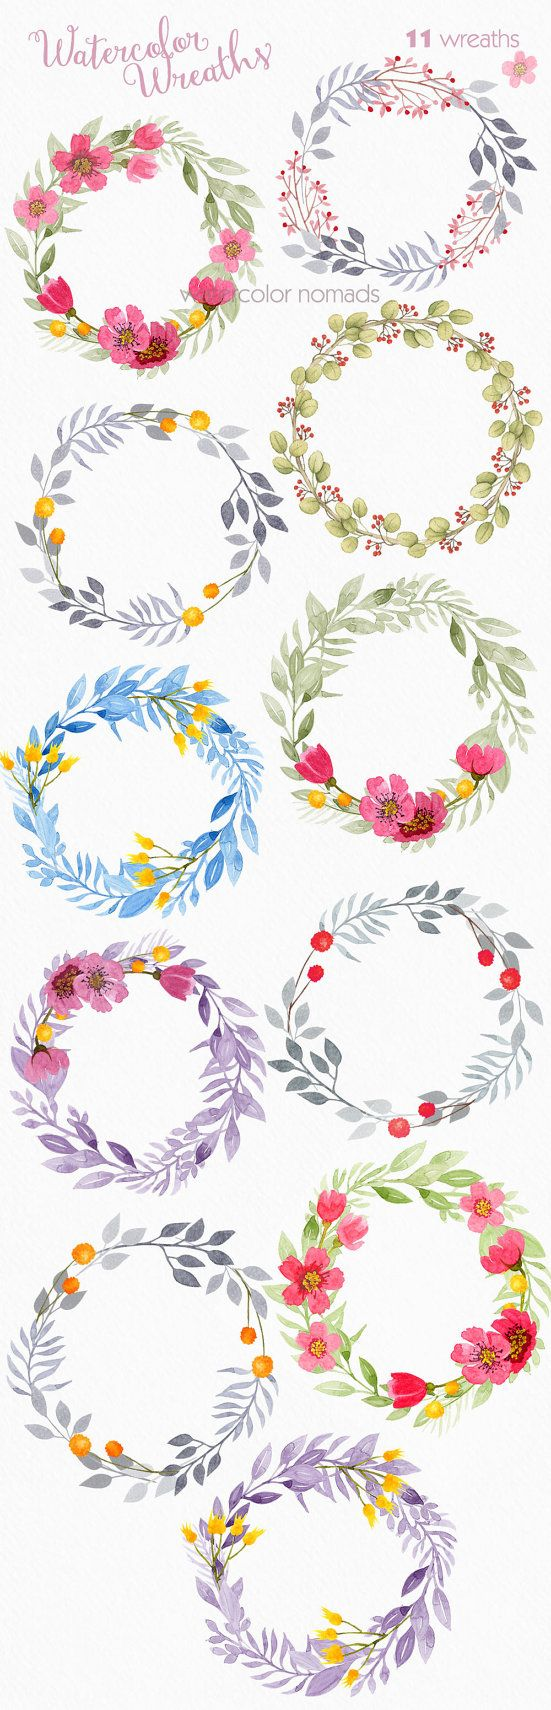 floral wreath clipart watercolor clipart by watercolornomads [ 551 x 1710 Pixel ]